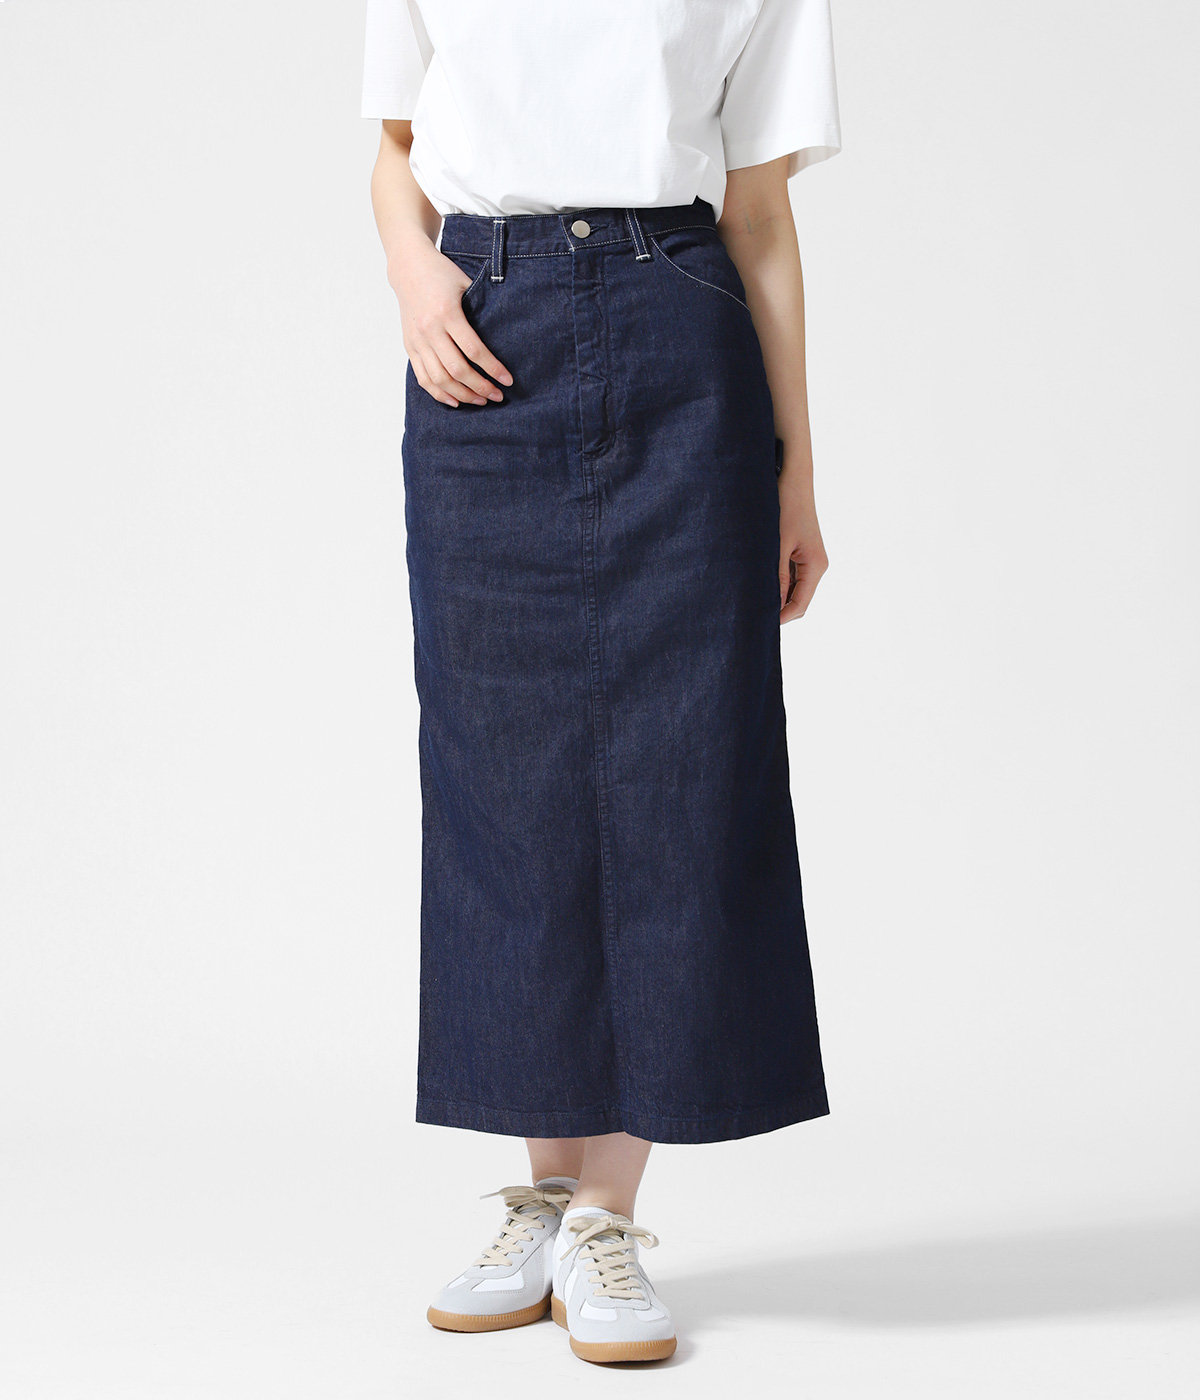 【レディース】HARD TWIST LIGHT DENIM SKIRT